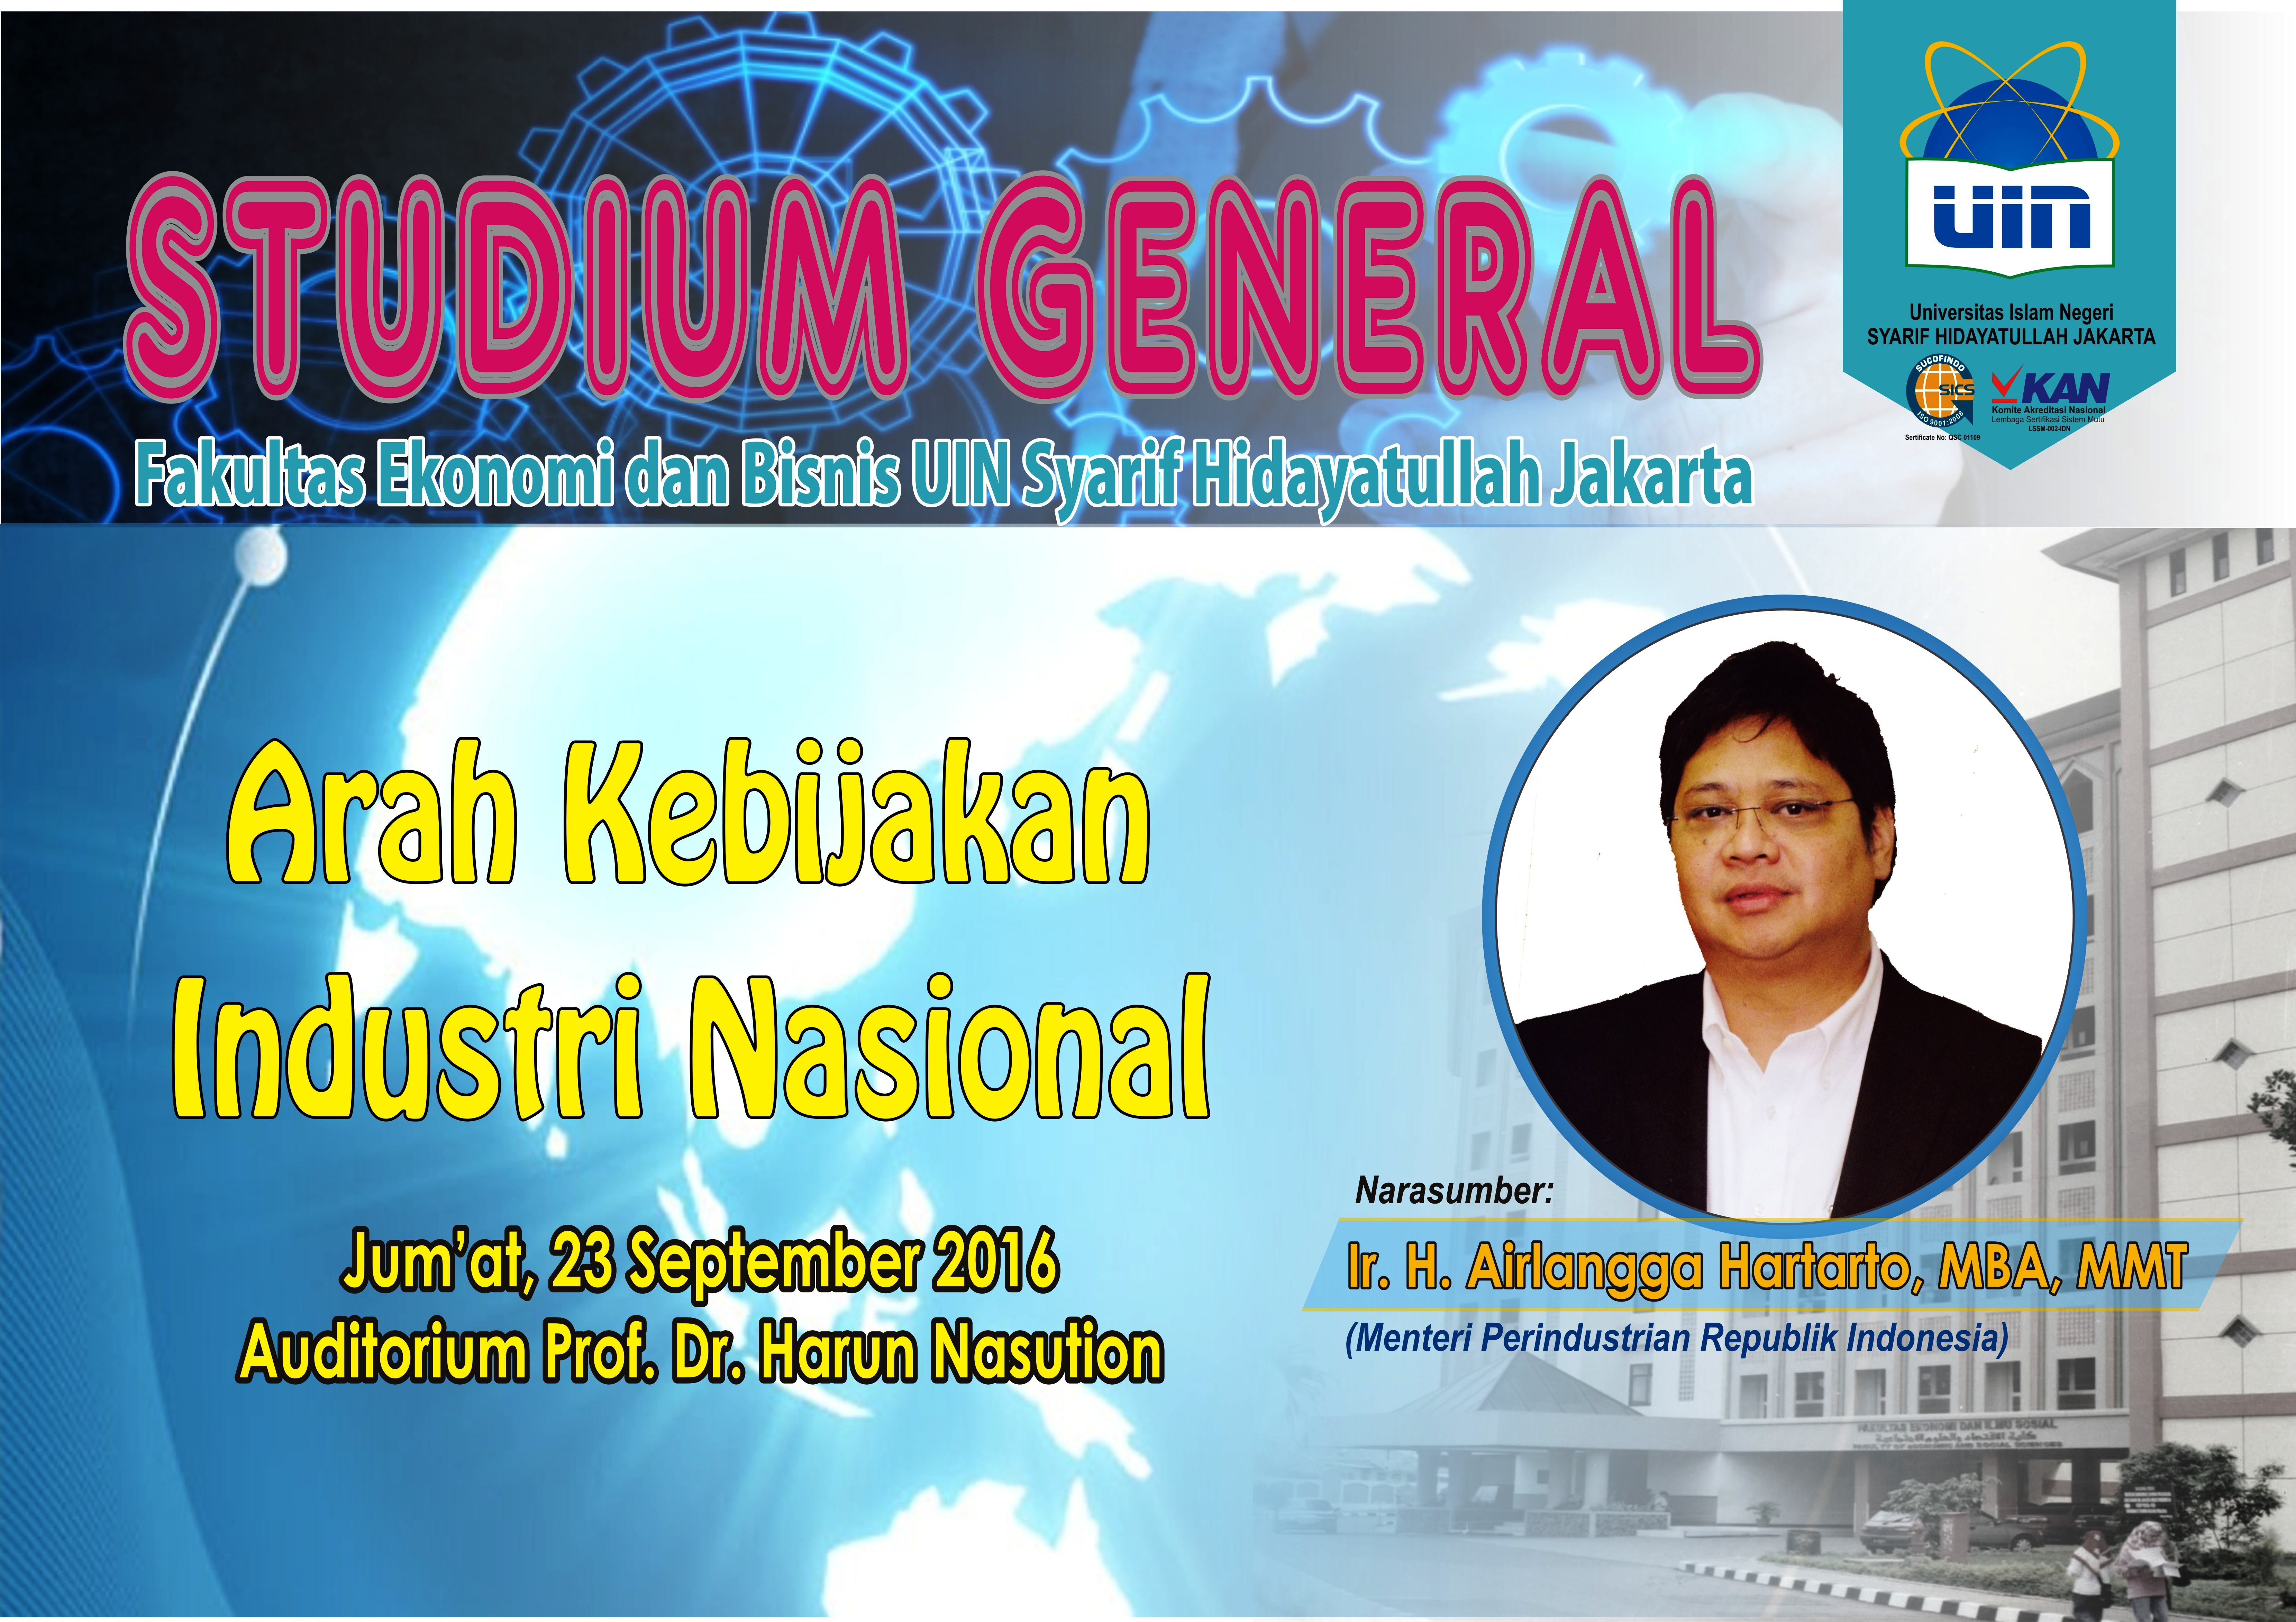 Industry Minister RI Presenter at the Studium General